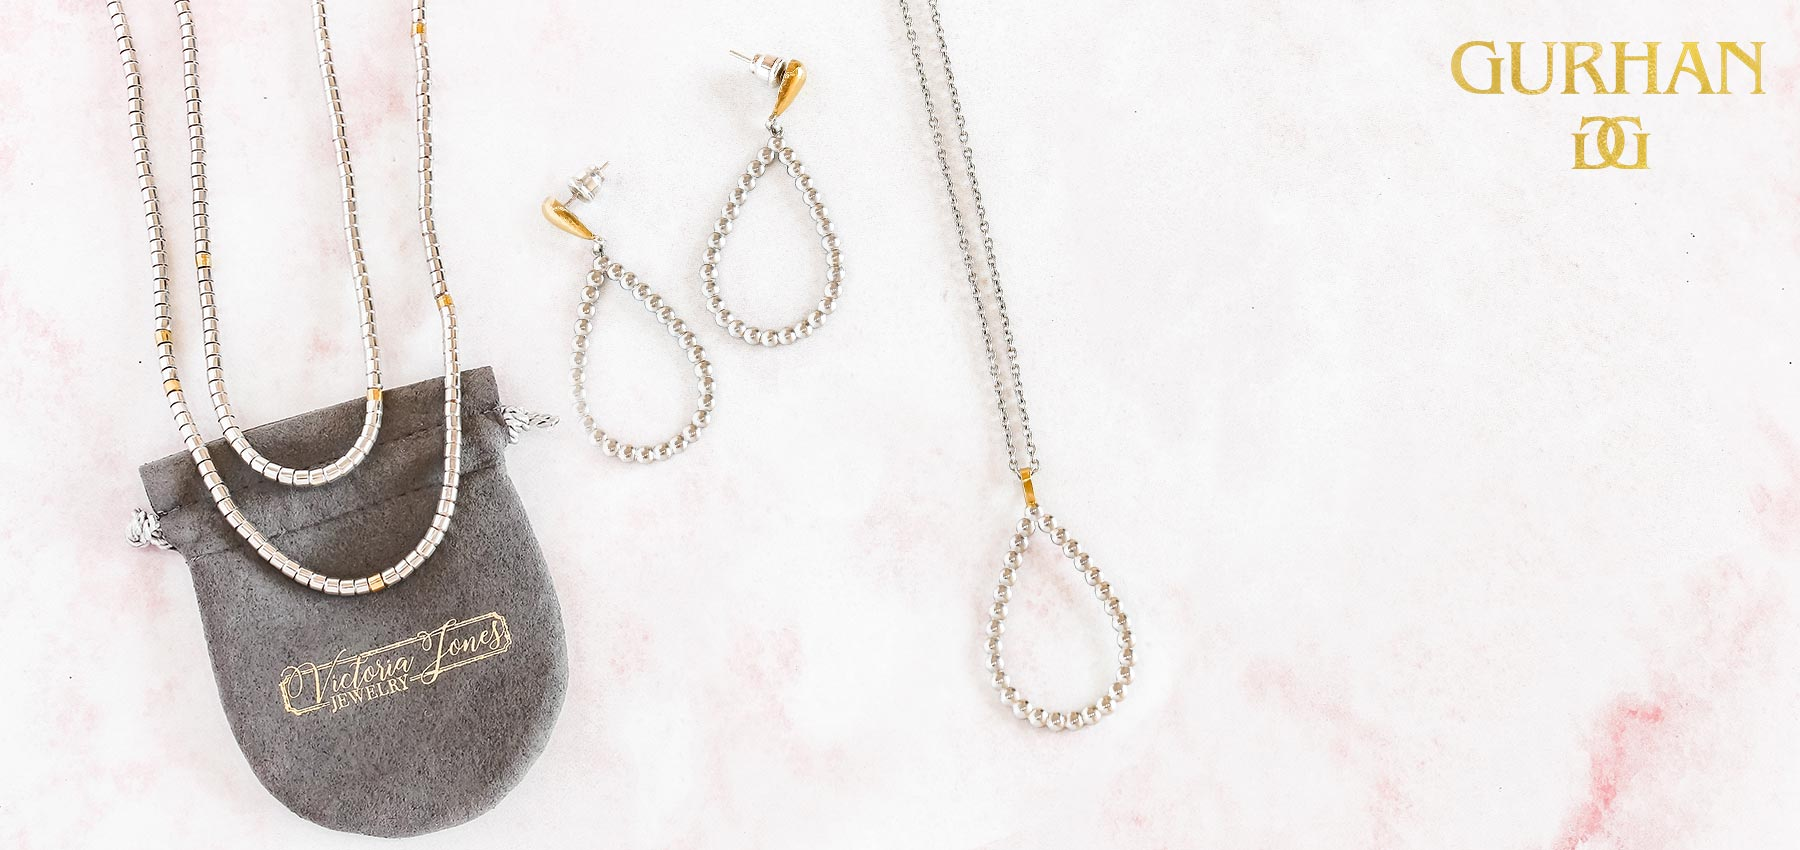 Gurhan sterling silver and 24k gold necklaces and earrings